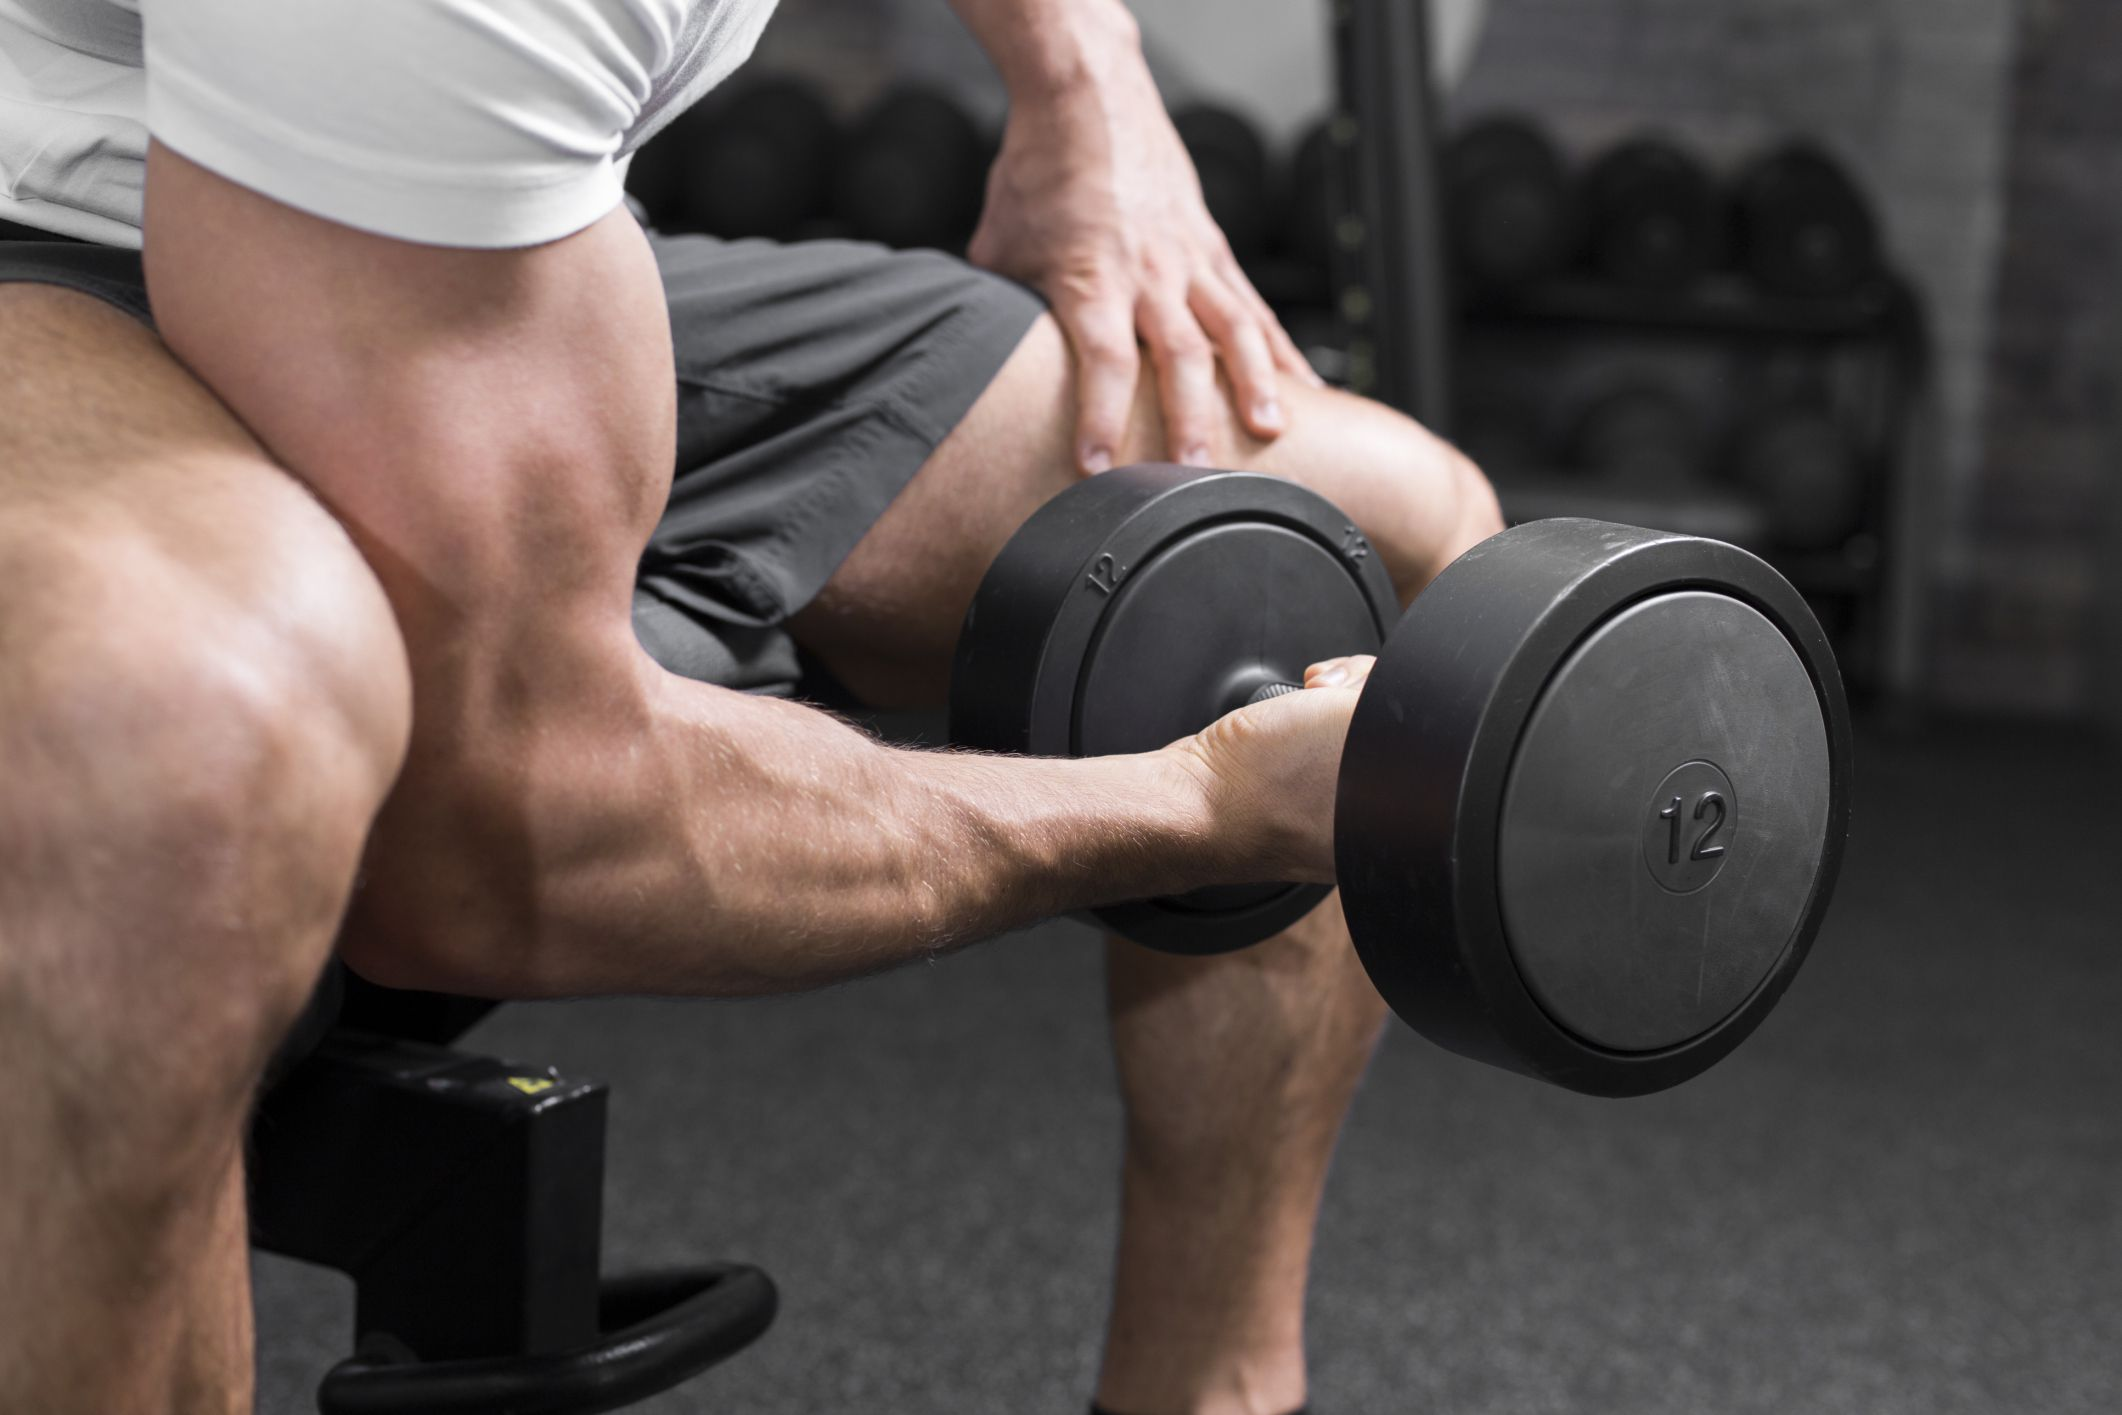 Muscle strength helps you age gracefully